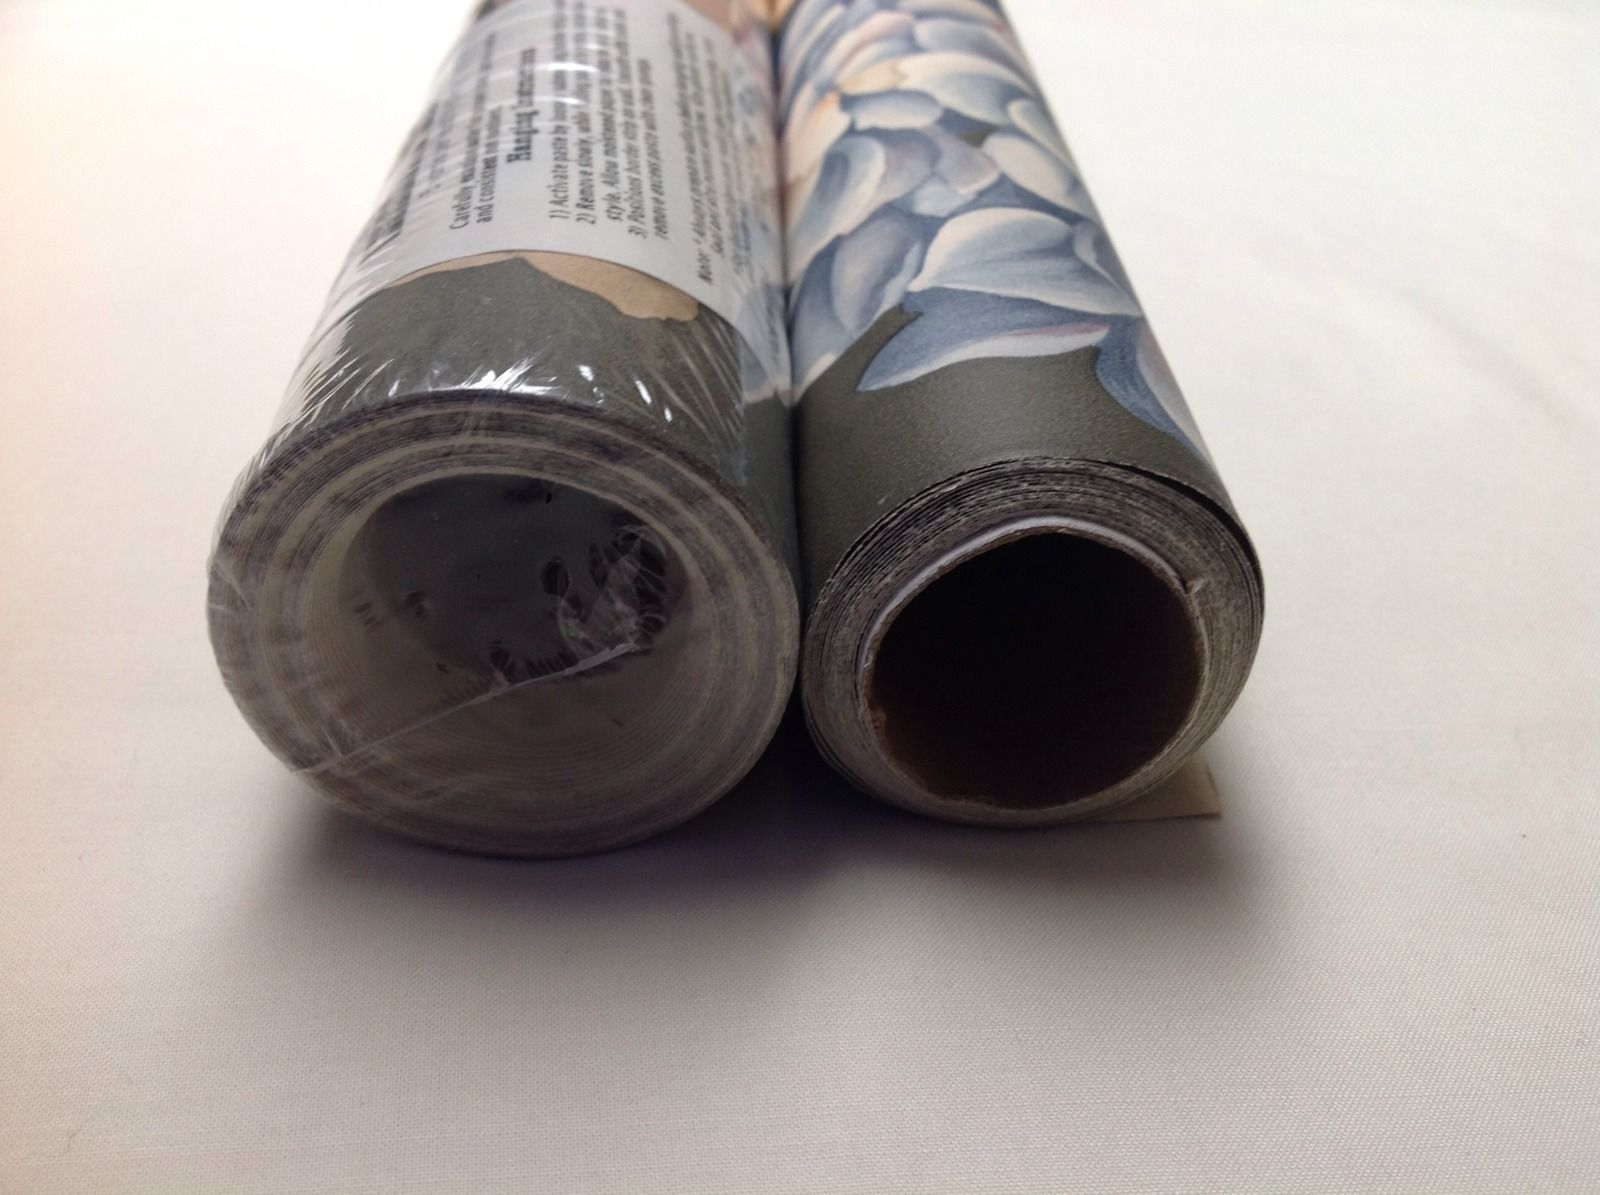 Wallpaper border by york prepasted 5 yards 1 new roll 1 for New york wallpaper rolls